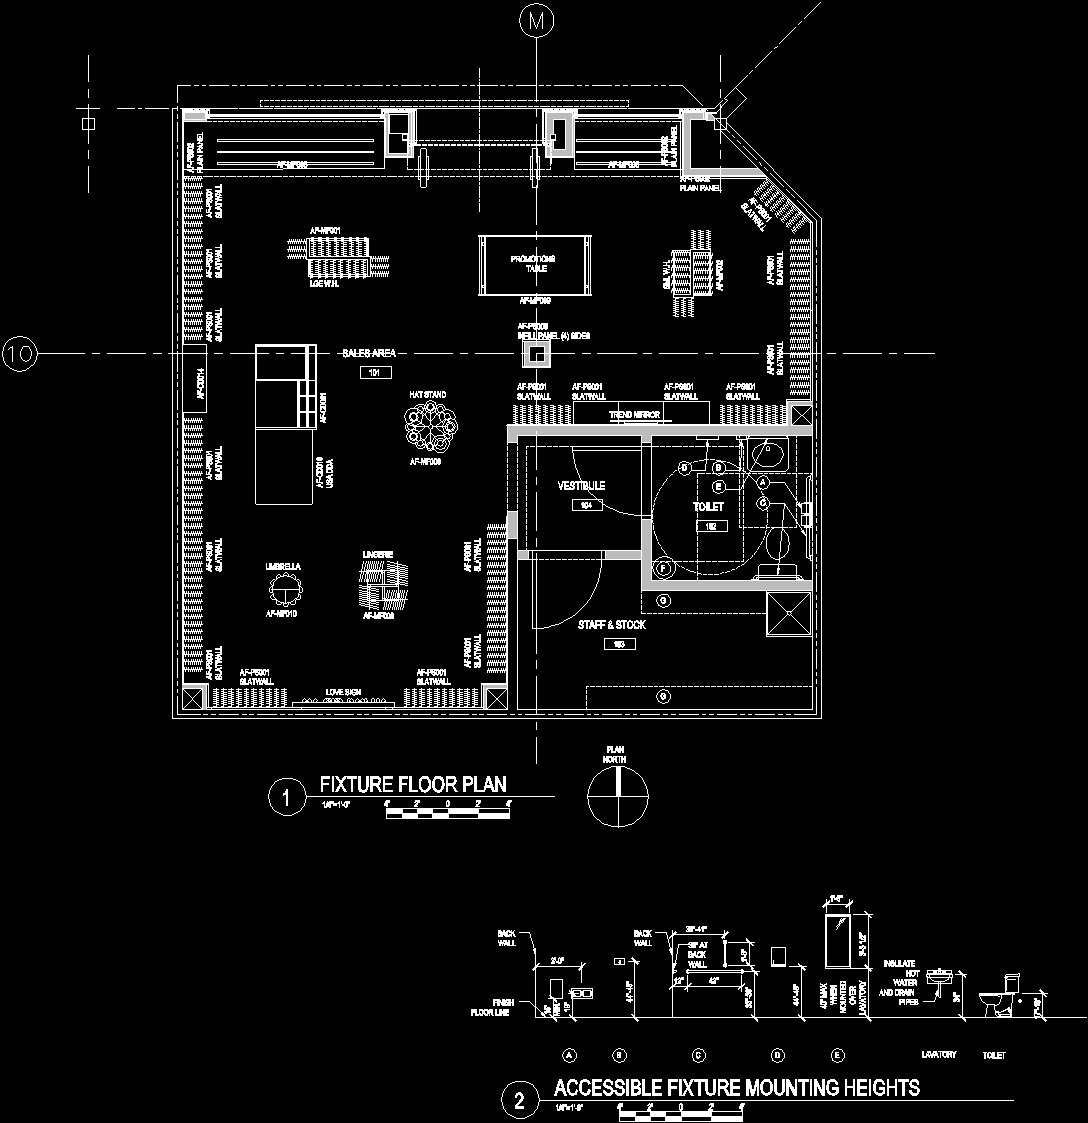 Retail Store Plans DWG Plan For AutoCAD Designs CAD